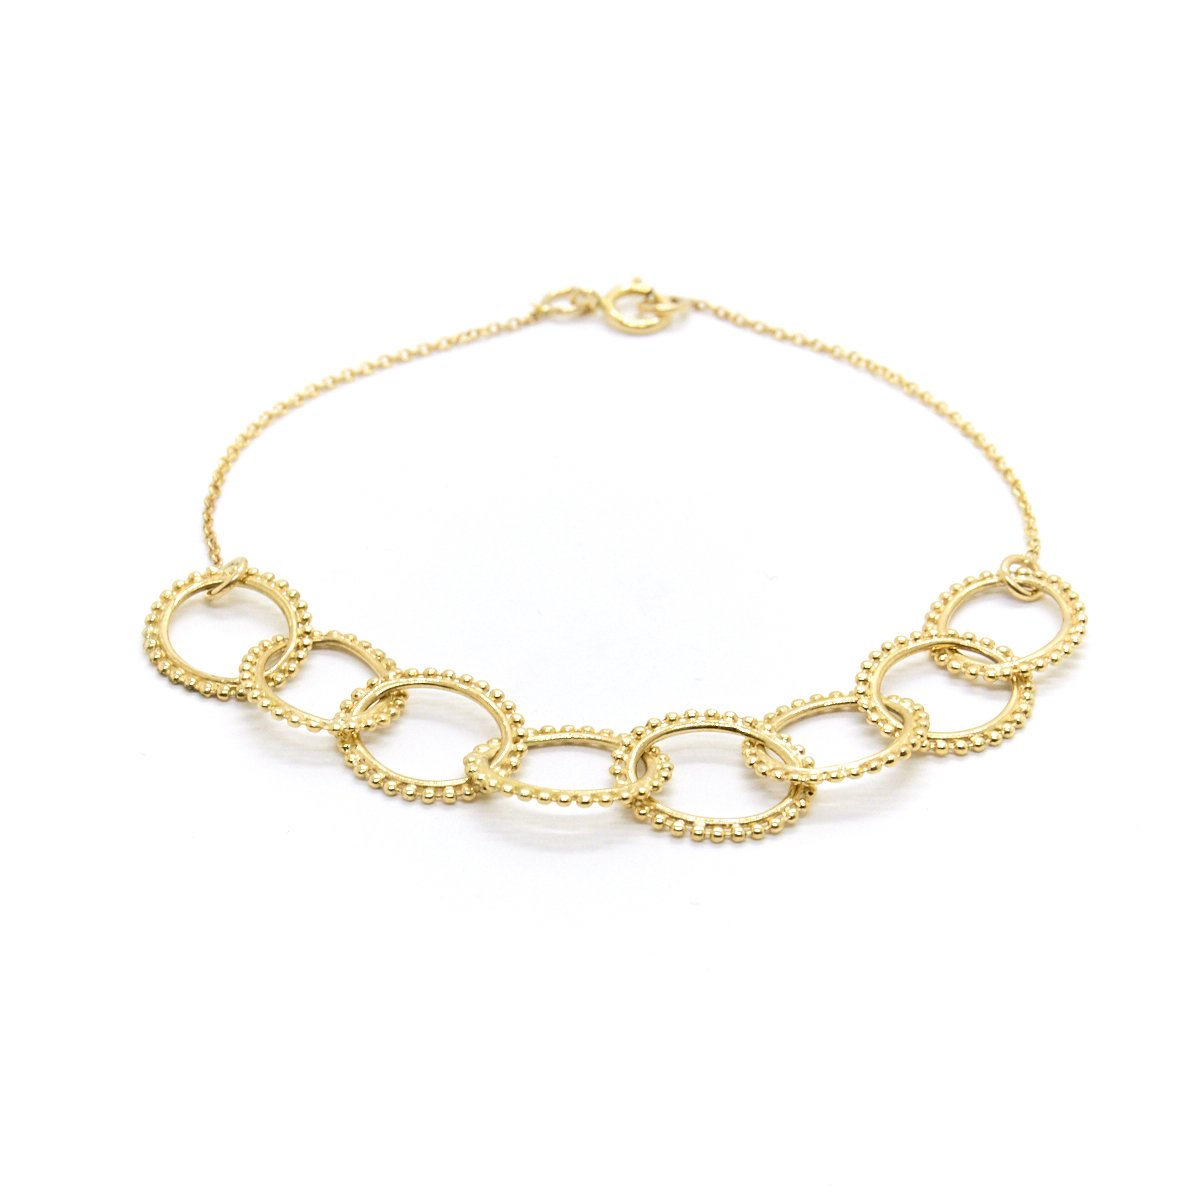 Natalie Marie Jewellery Dotted Oval Chain Bracelet